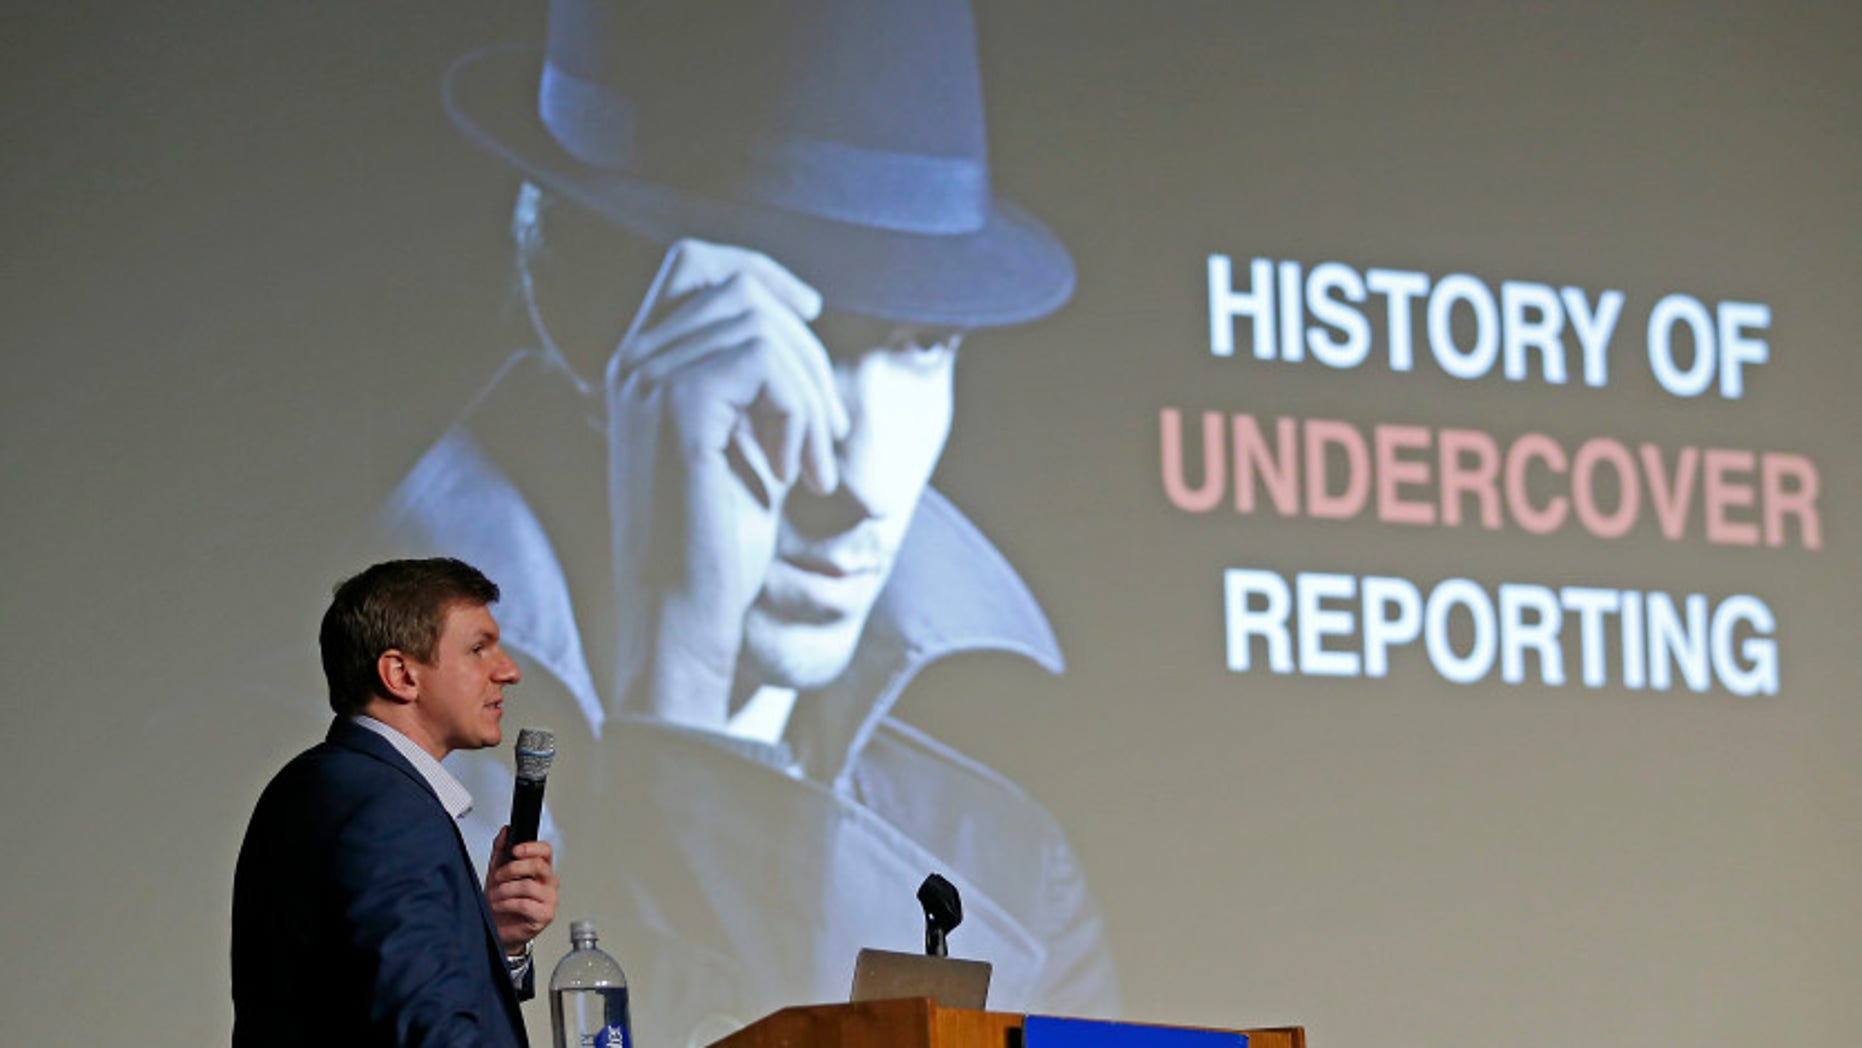 James O'Keefe, of Project Veritas, speaks at Southern Methodist University in Dallas, Nov. 29, 2017.